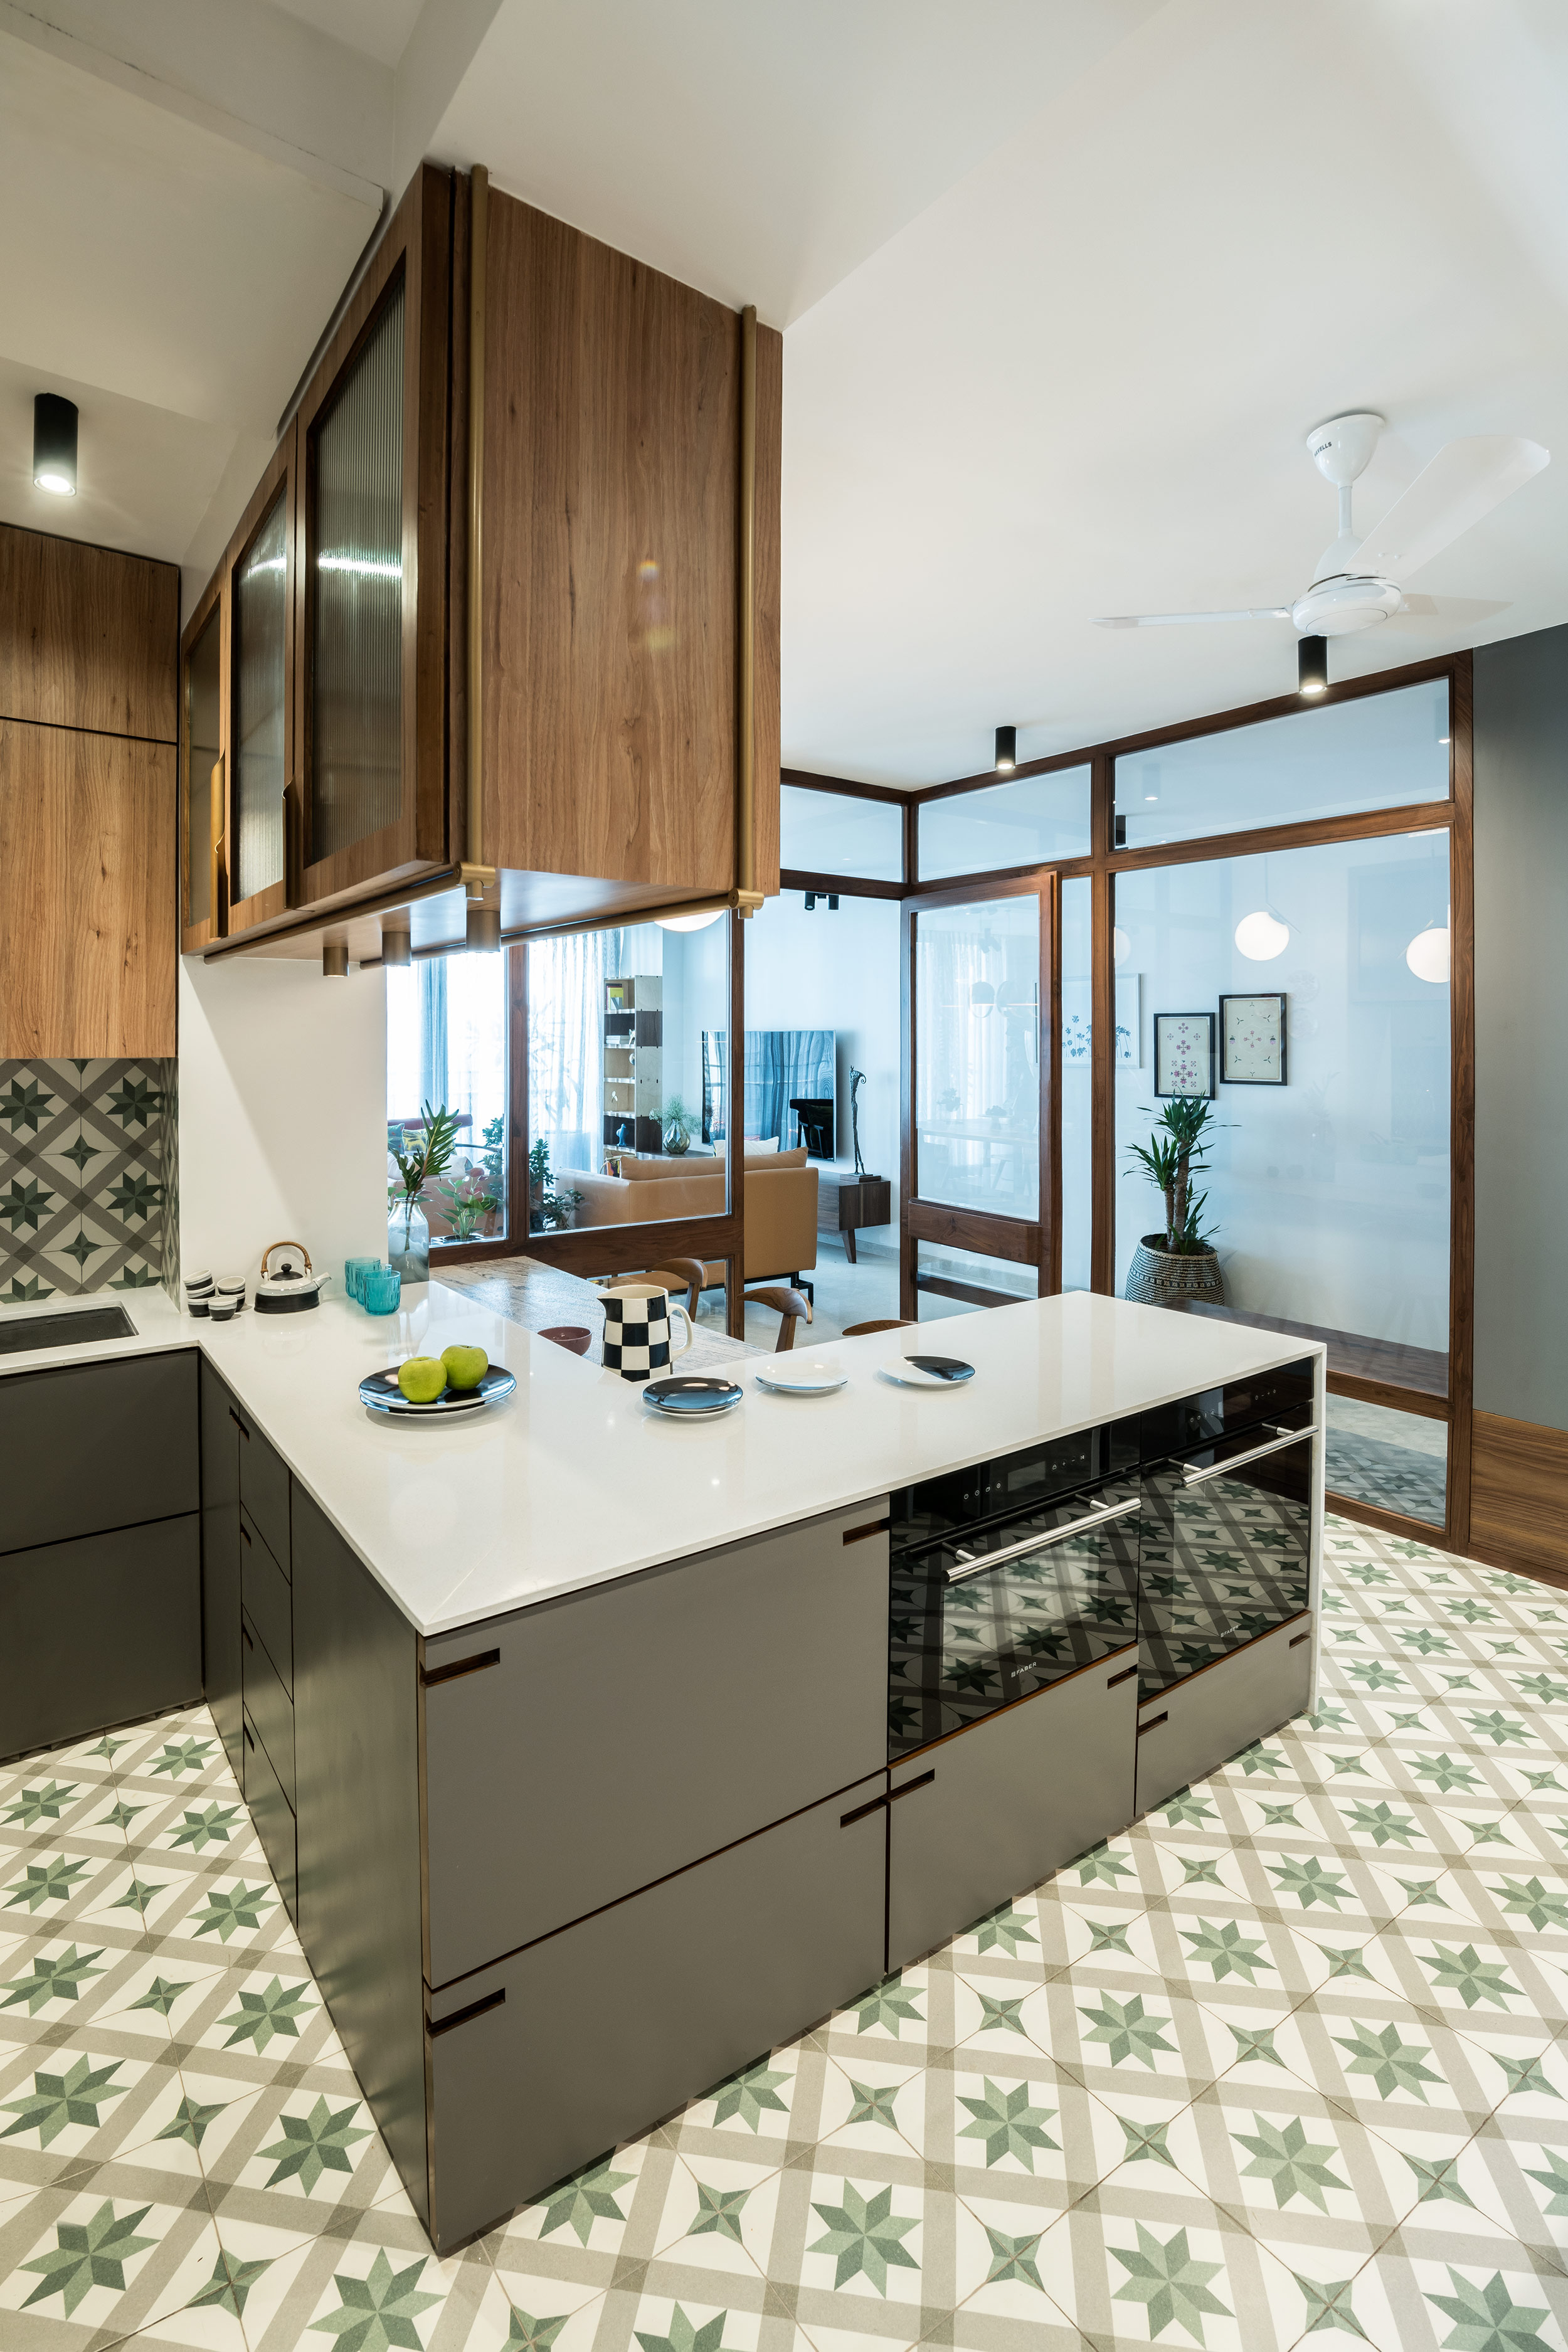 5 spectacular indian kitchen designs that provide food for on Organizing The Kitchen Area With A Dainty Kitchen Backsplash Decoration Model id=36632